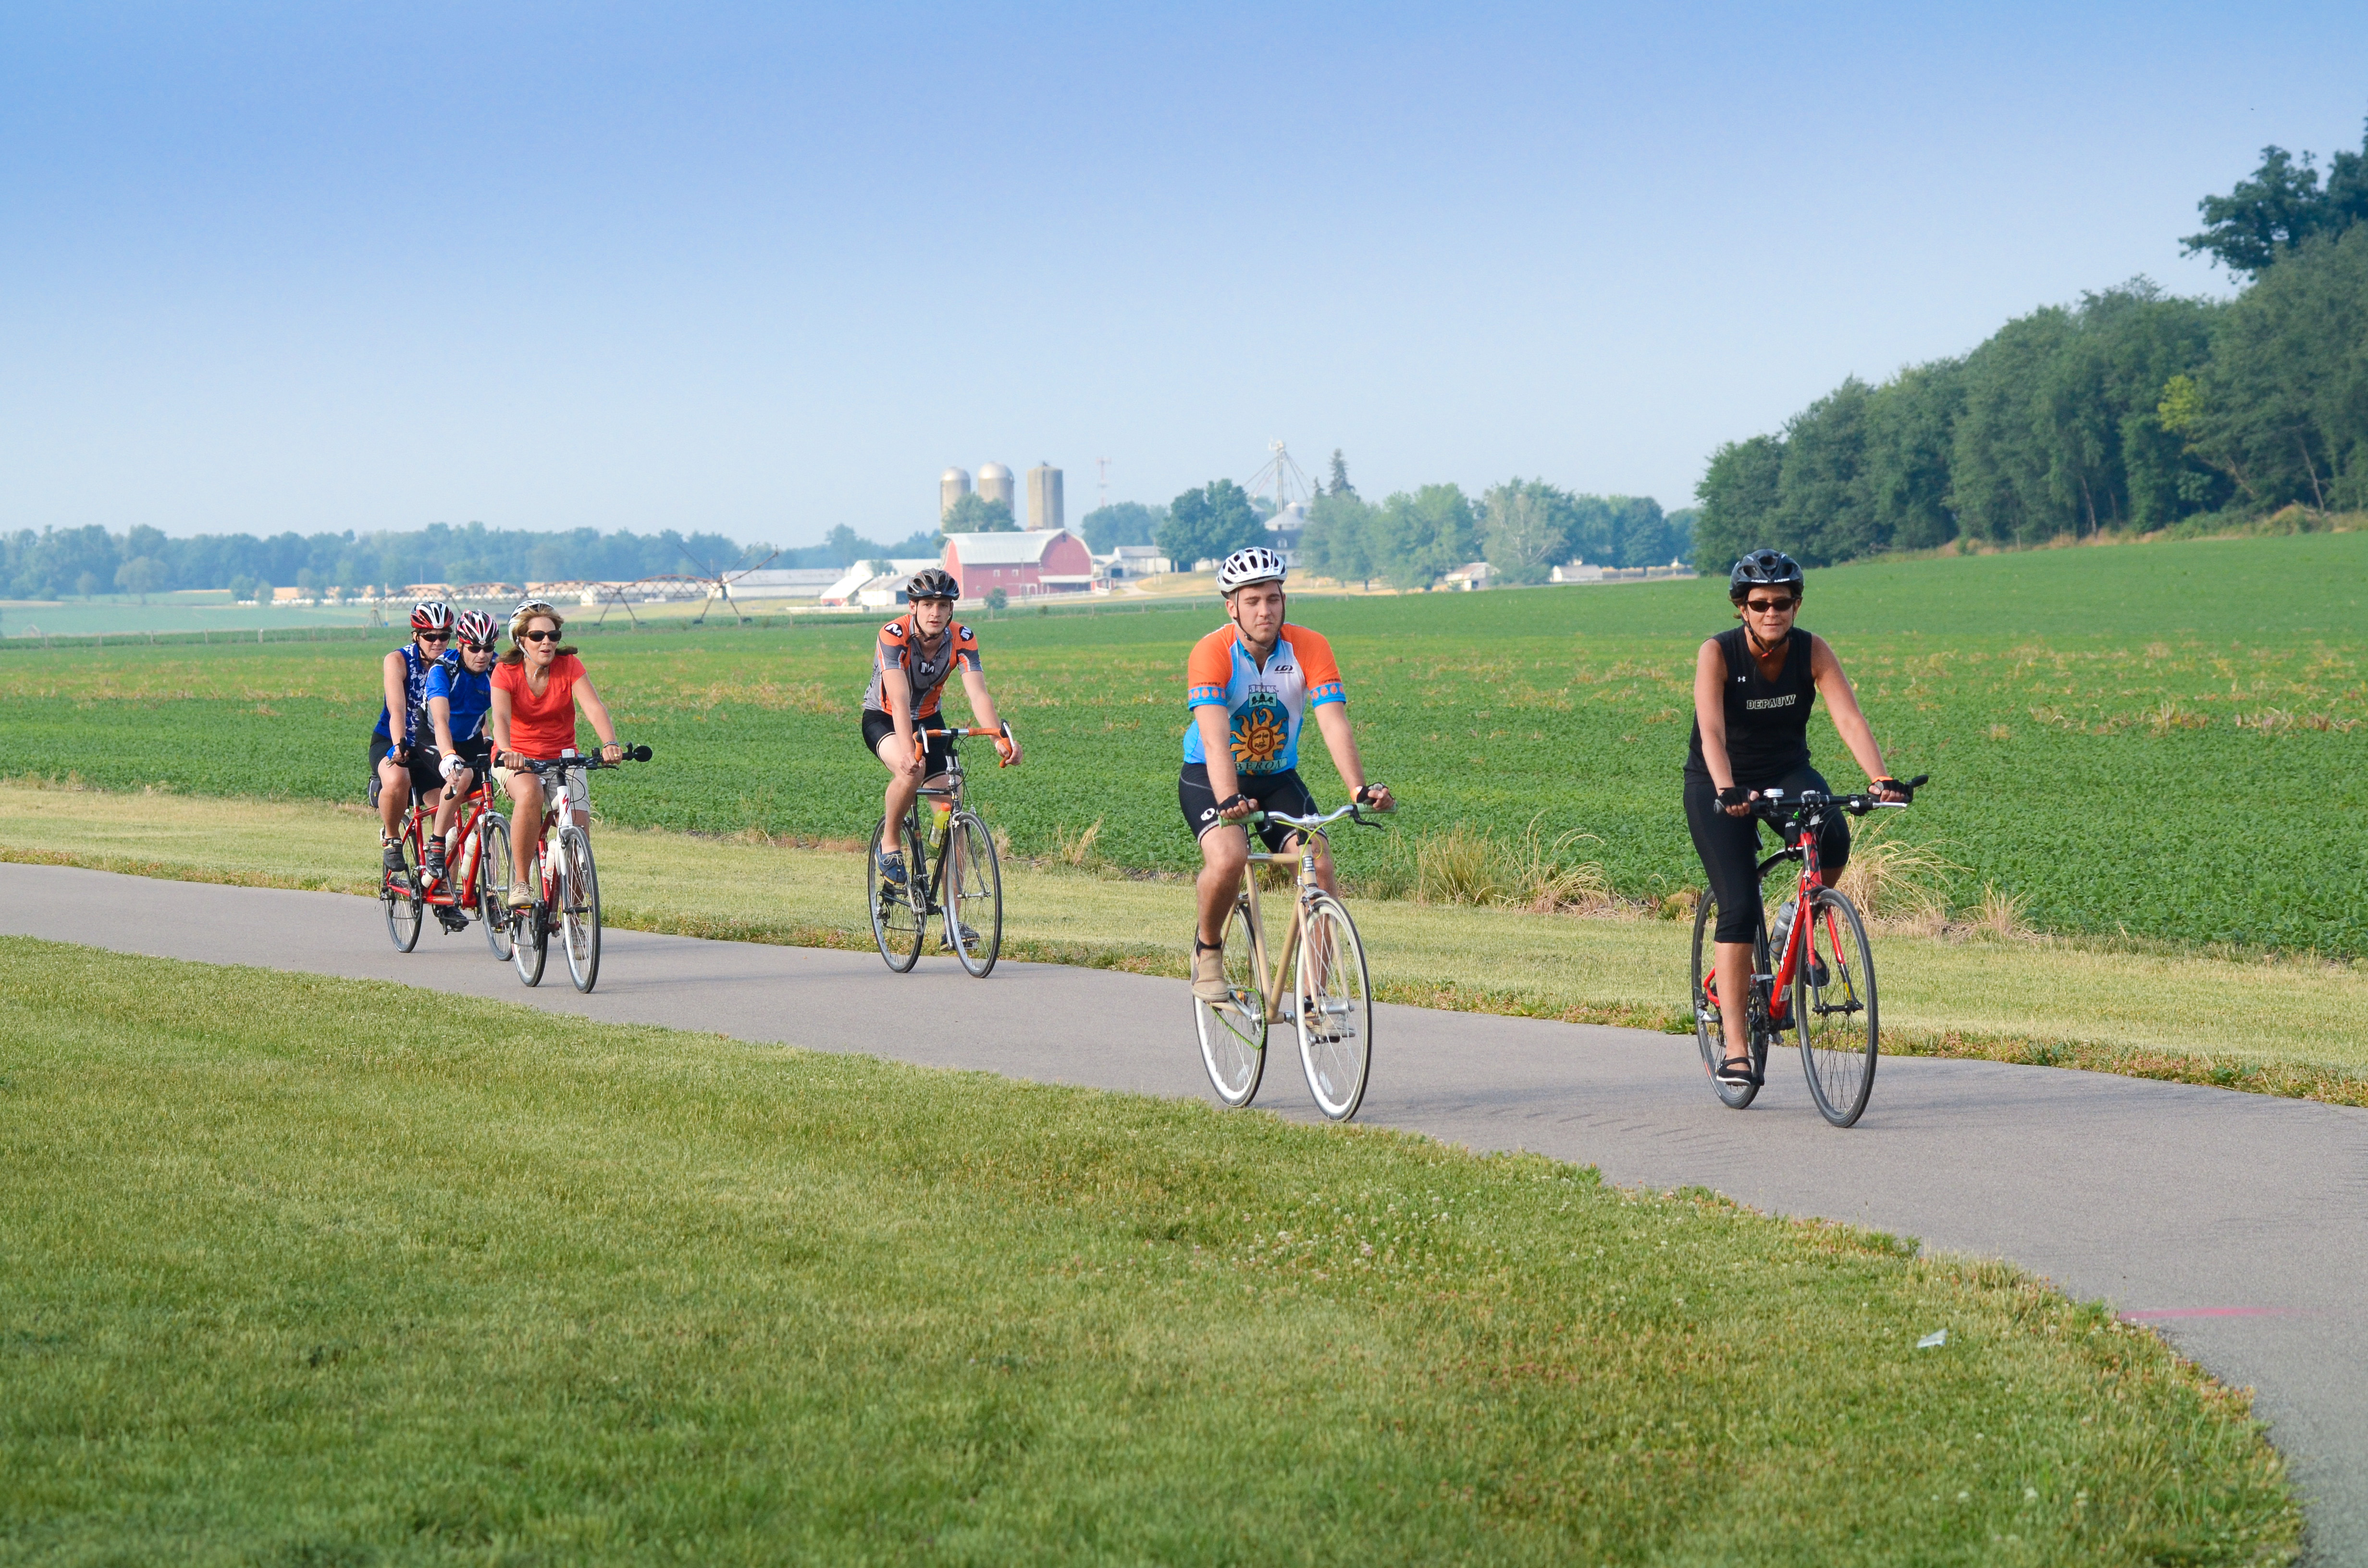 Quaker Trace is an early success for Vibrant Communities Action Agenda